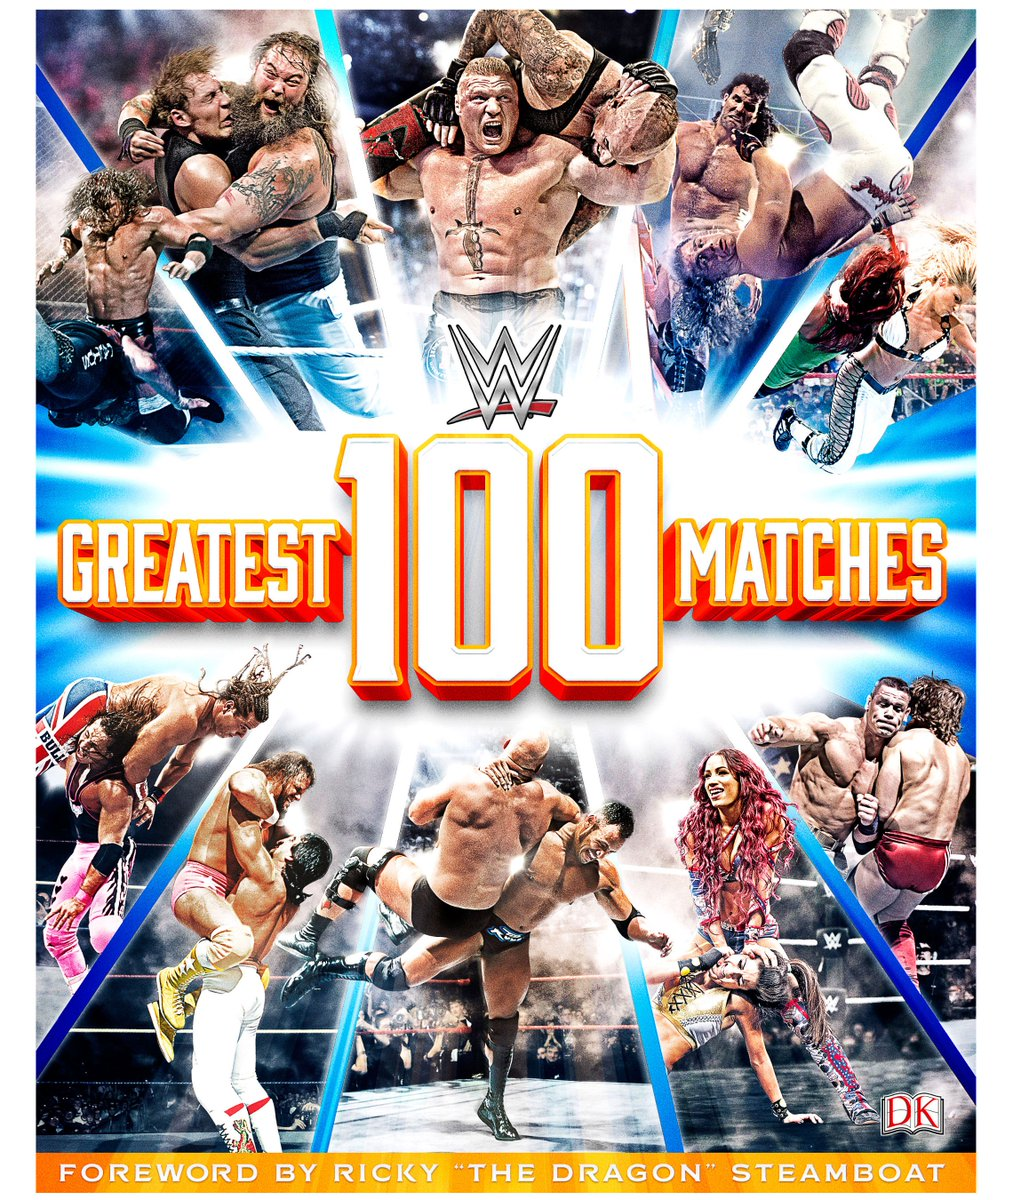 Exicited to reveal the cover of WWE #100GreatestMatches Tell us what you think!  https://t.co/seGlHi24F5 https://t.co/u3bOmnM4QB